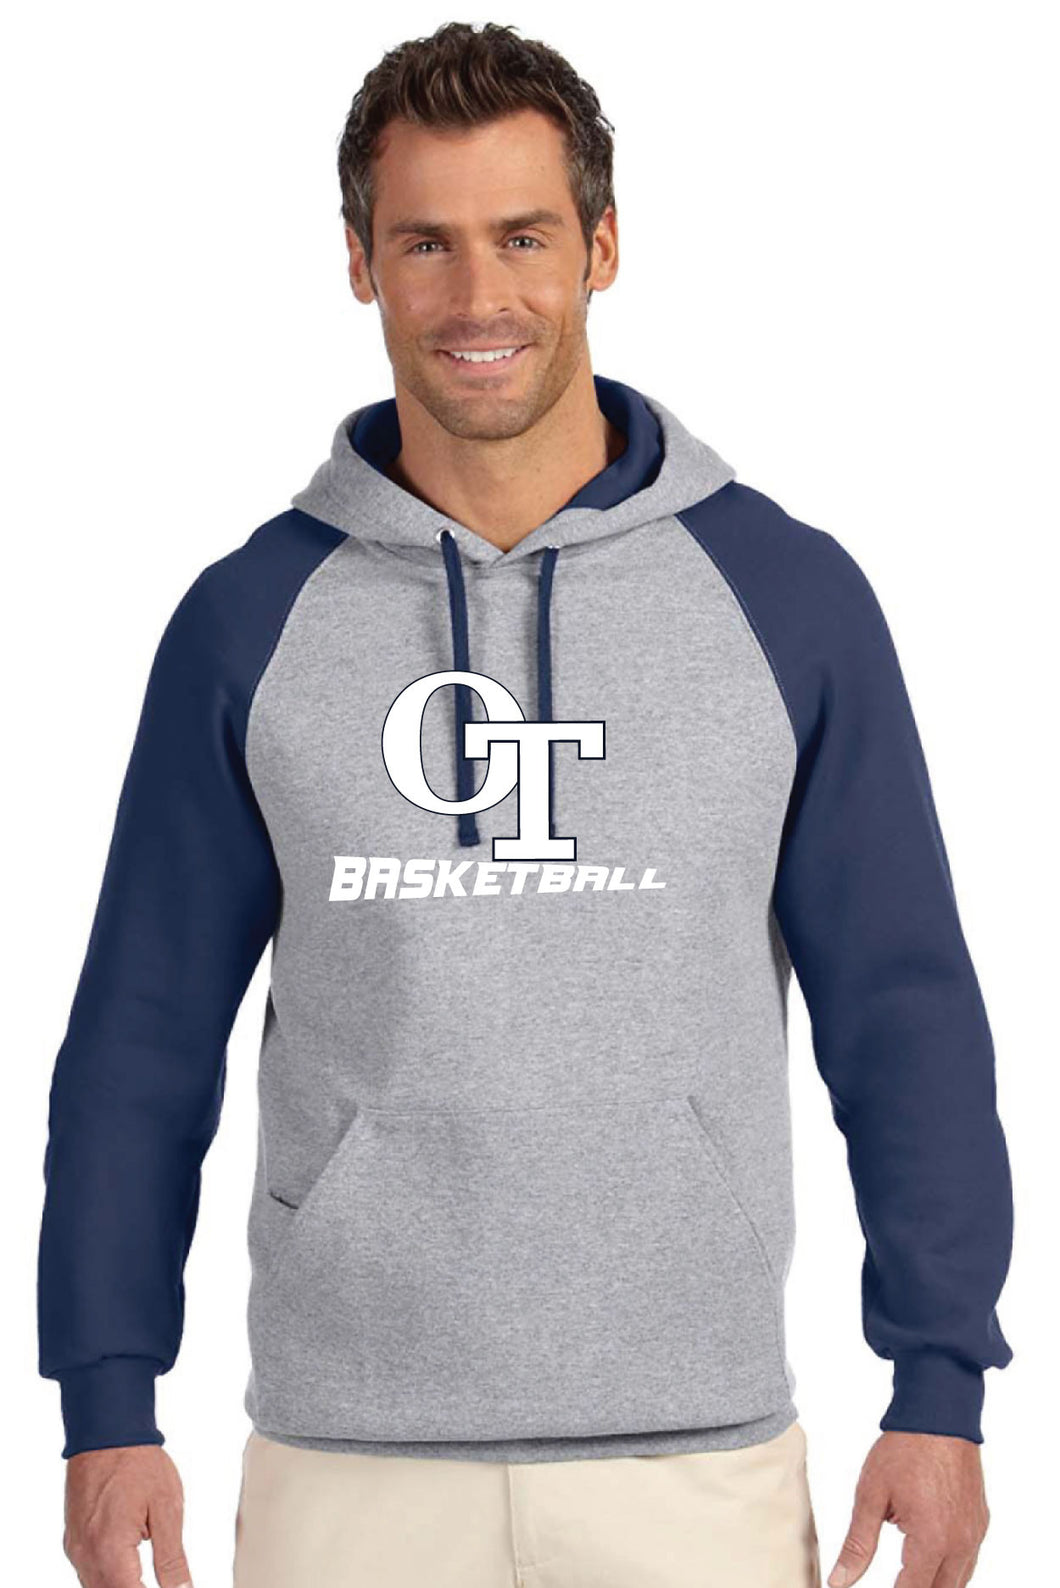 OT Basketball Adult Colorblock Hoodie